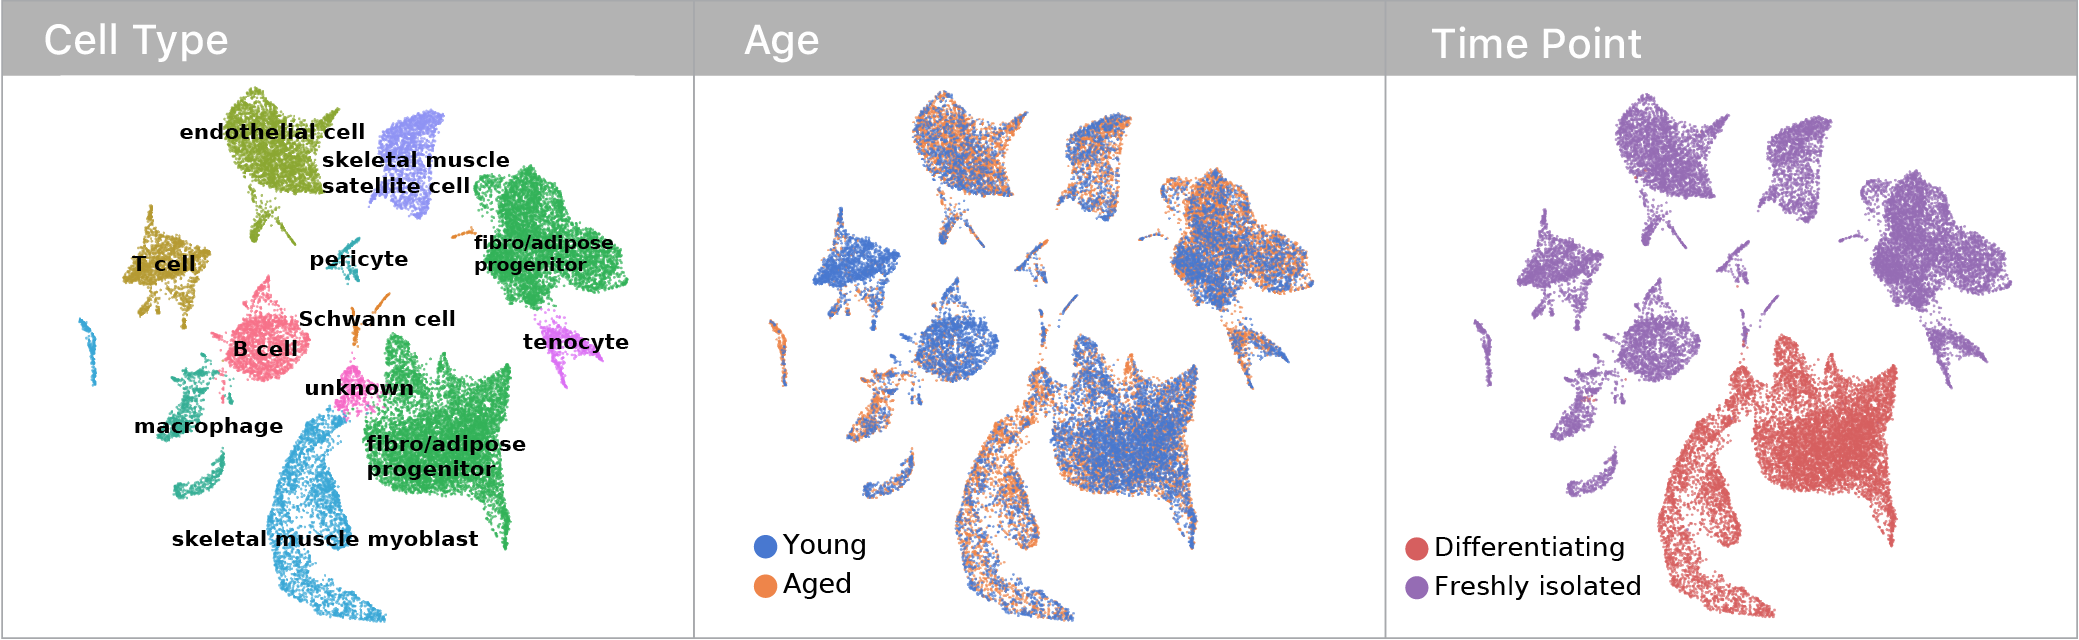 Single cell mRNA abundance profiles displayed in a UMAP projection colored by cell type